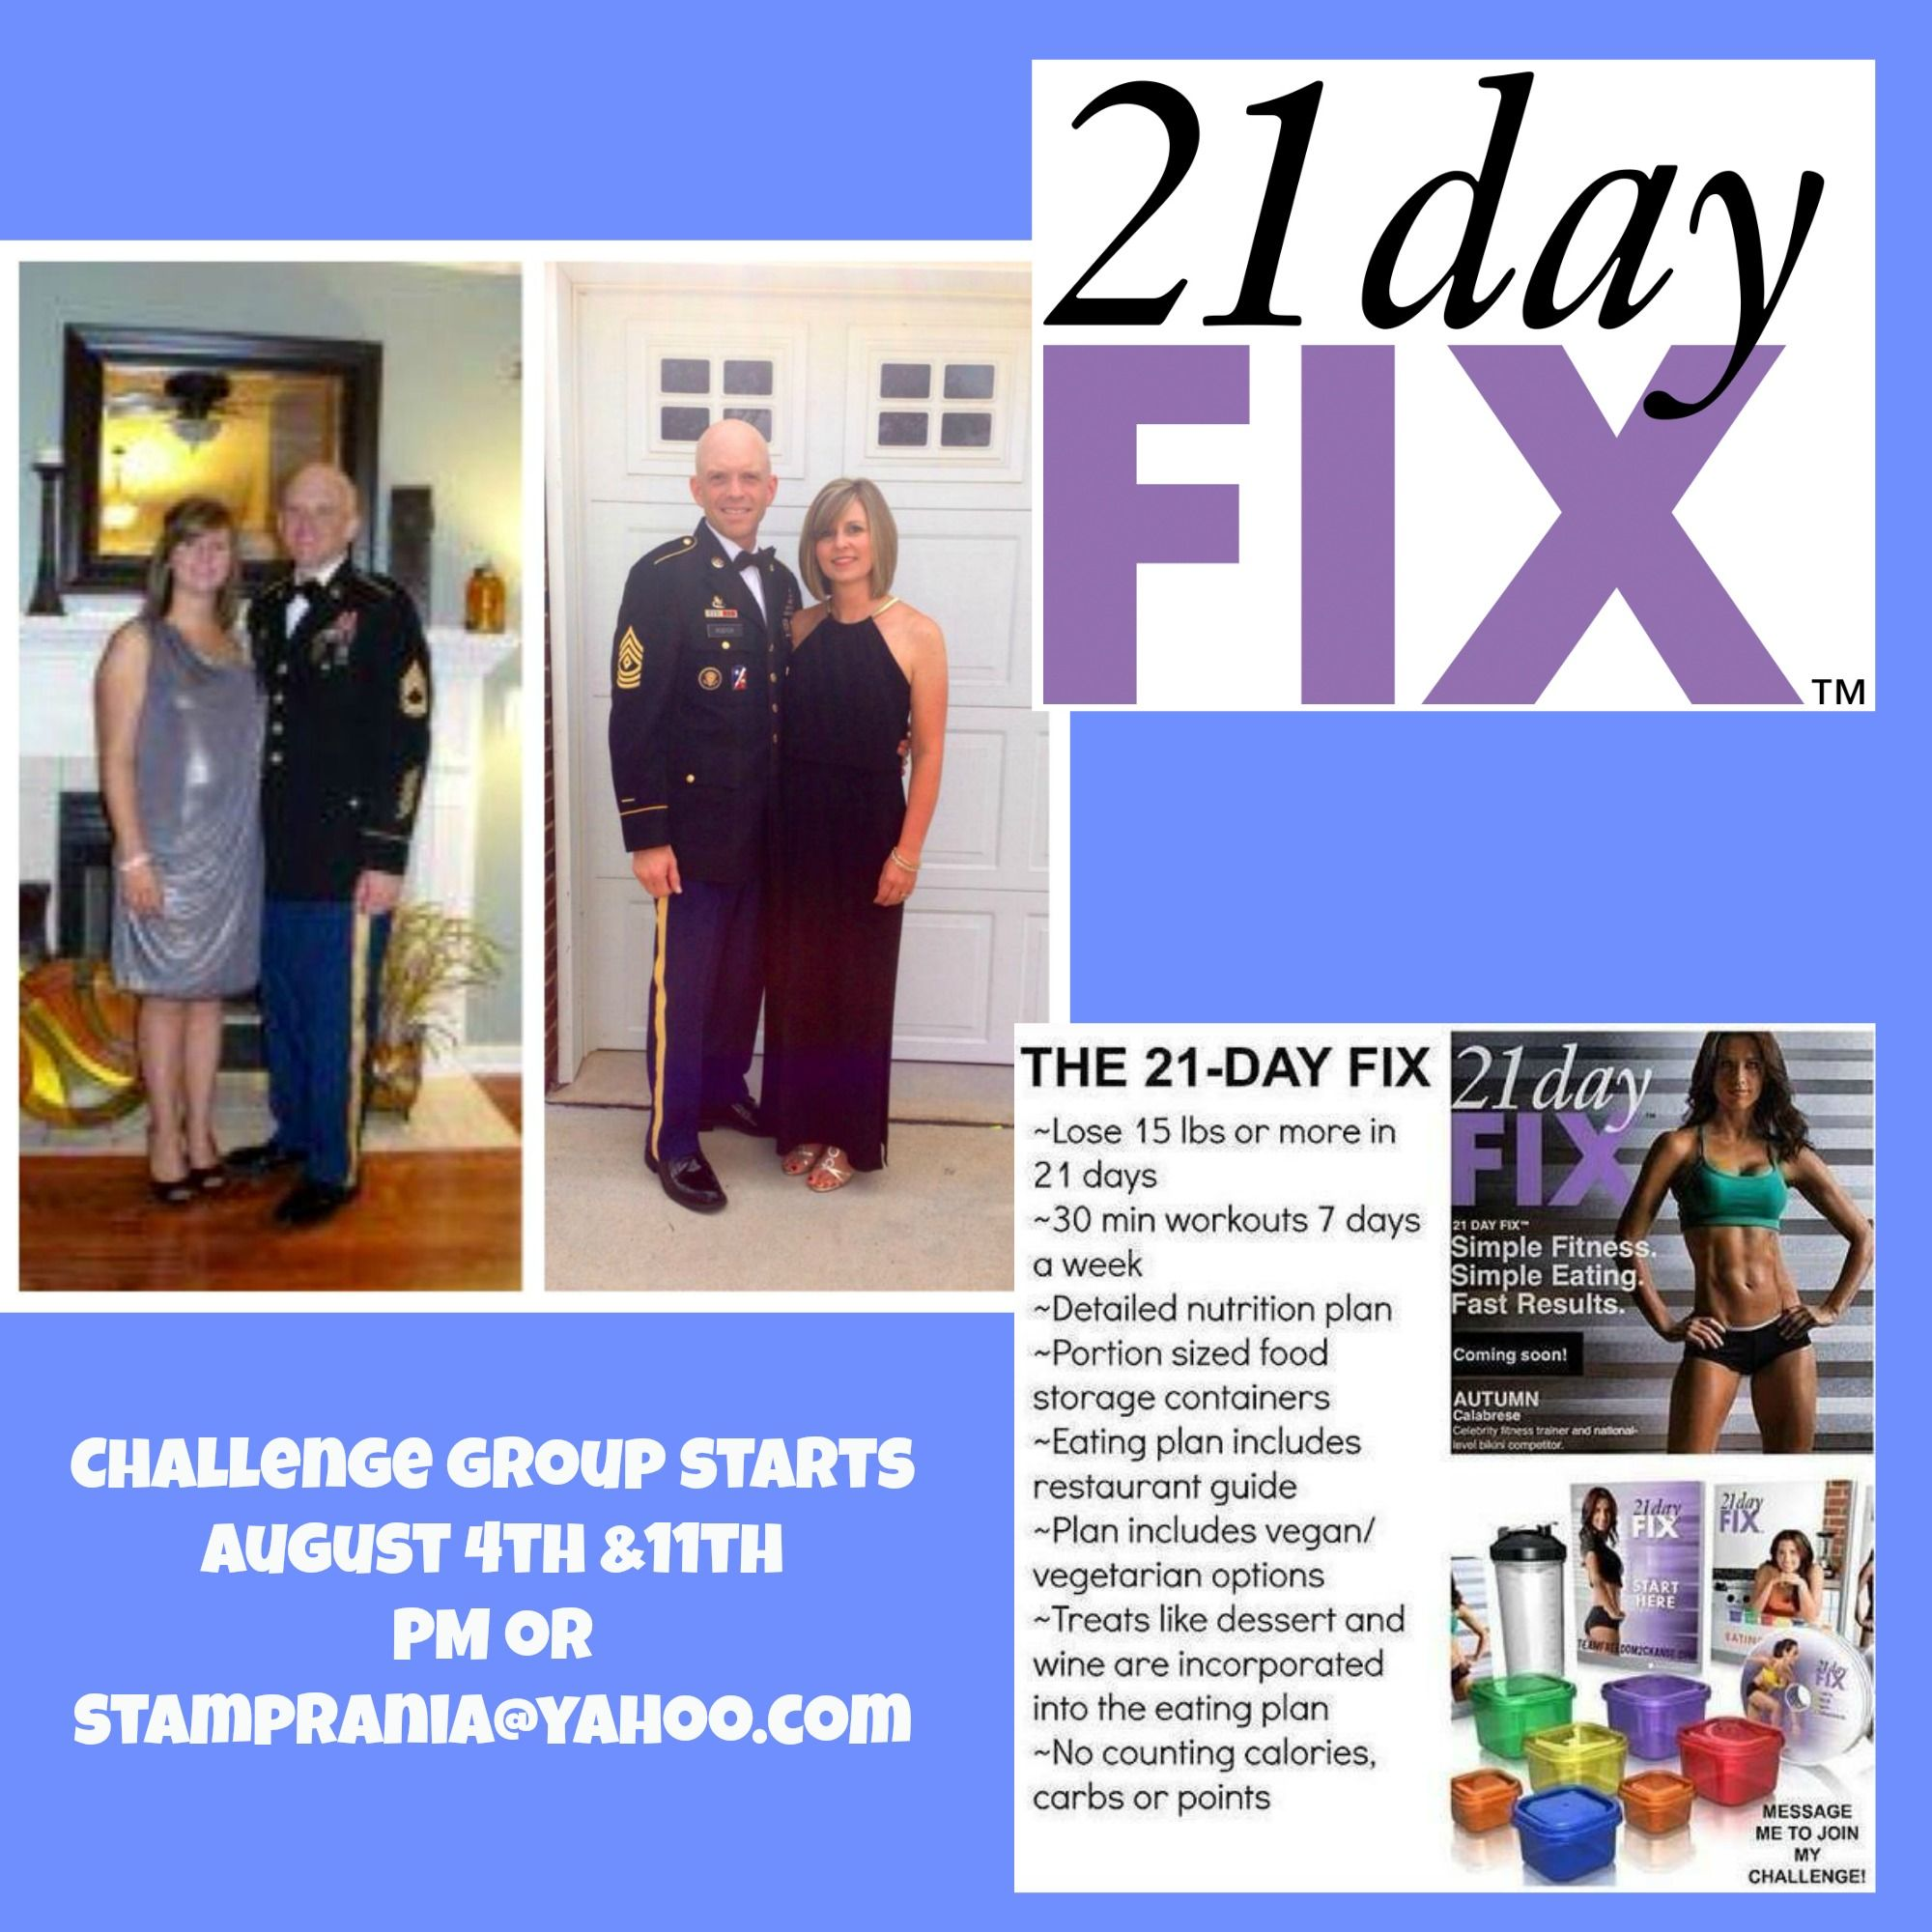 21 days and lose 1015lbs just by eating the right foods